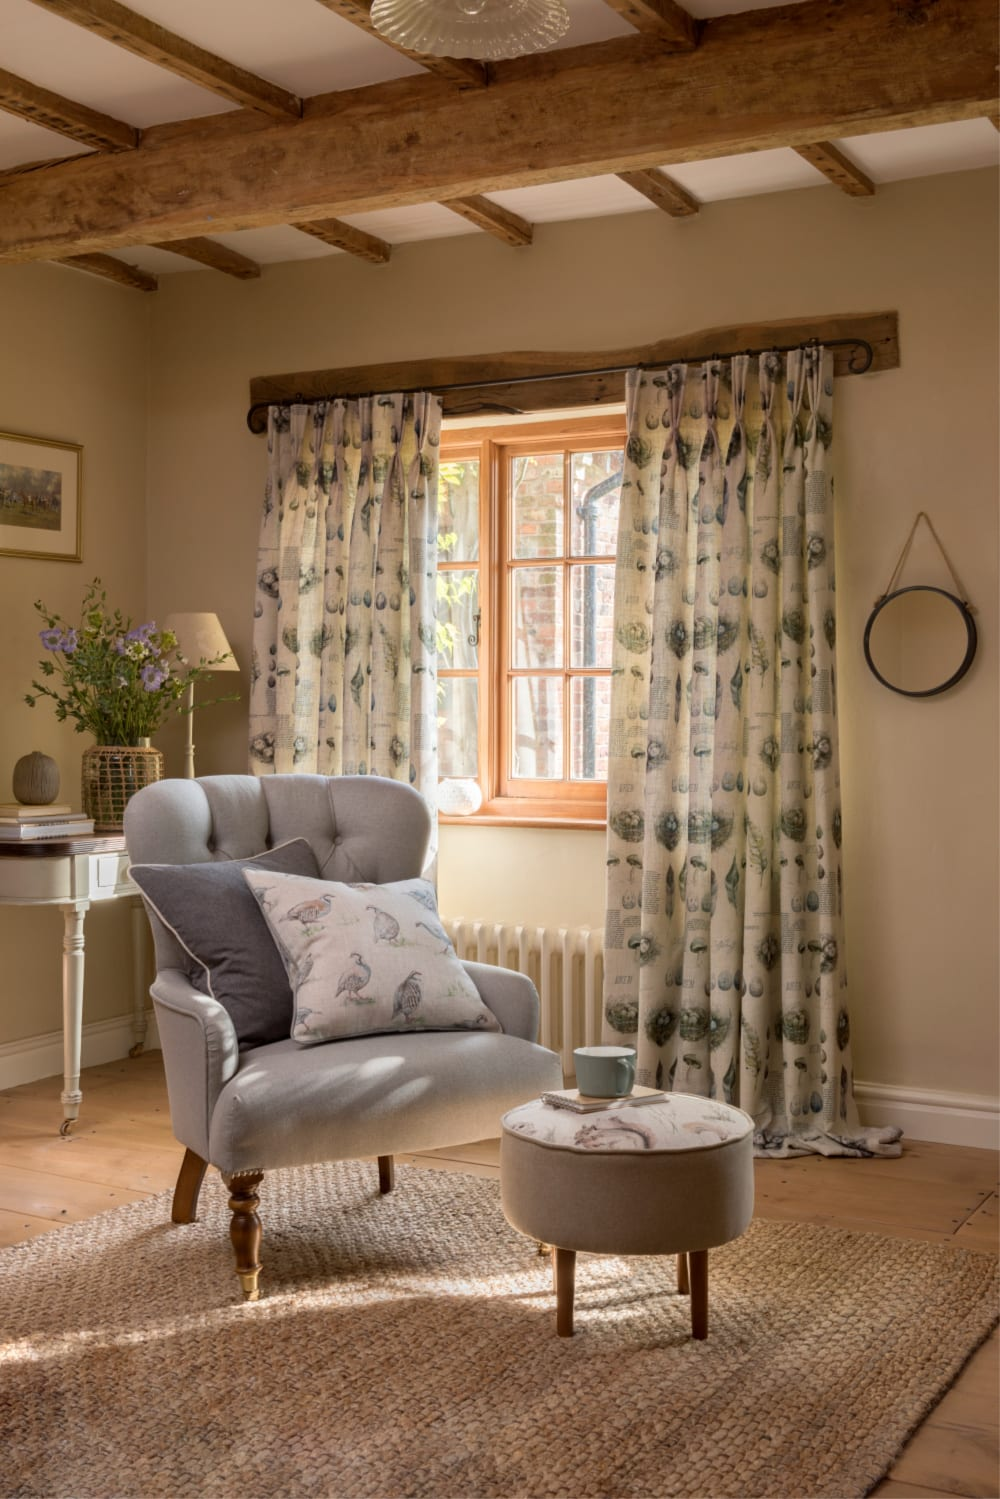 Curtains in heritage prints really suit traditional style homes Countryside fabric - Curtains Norfolk - Norwich Sunblinds